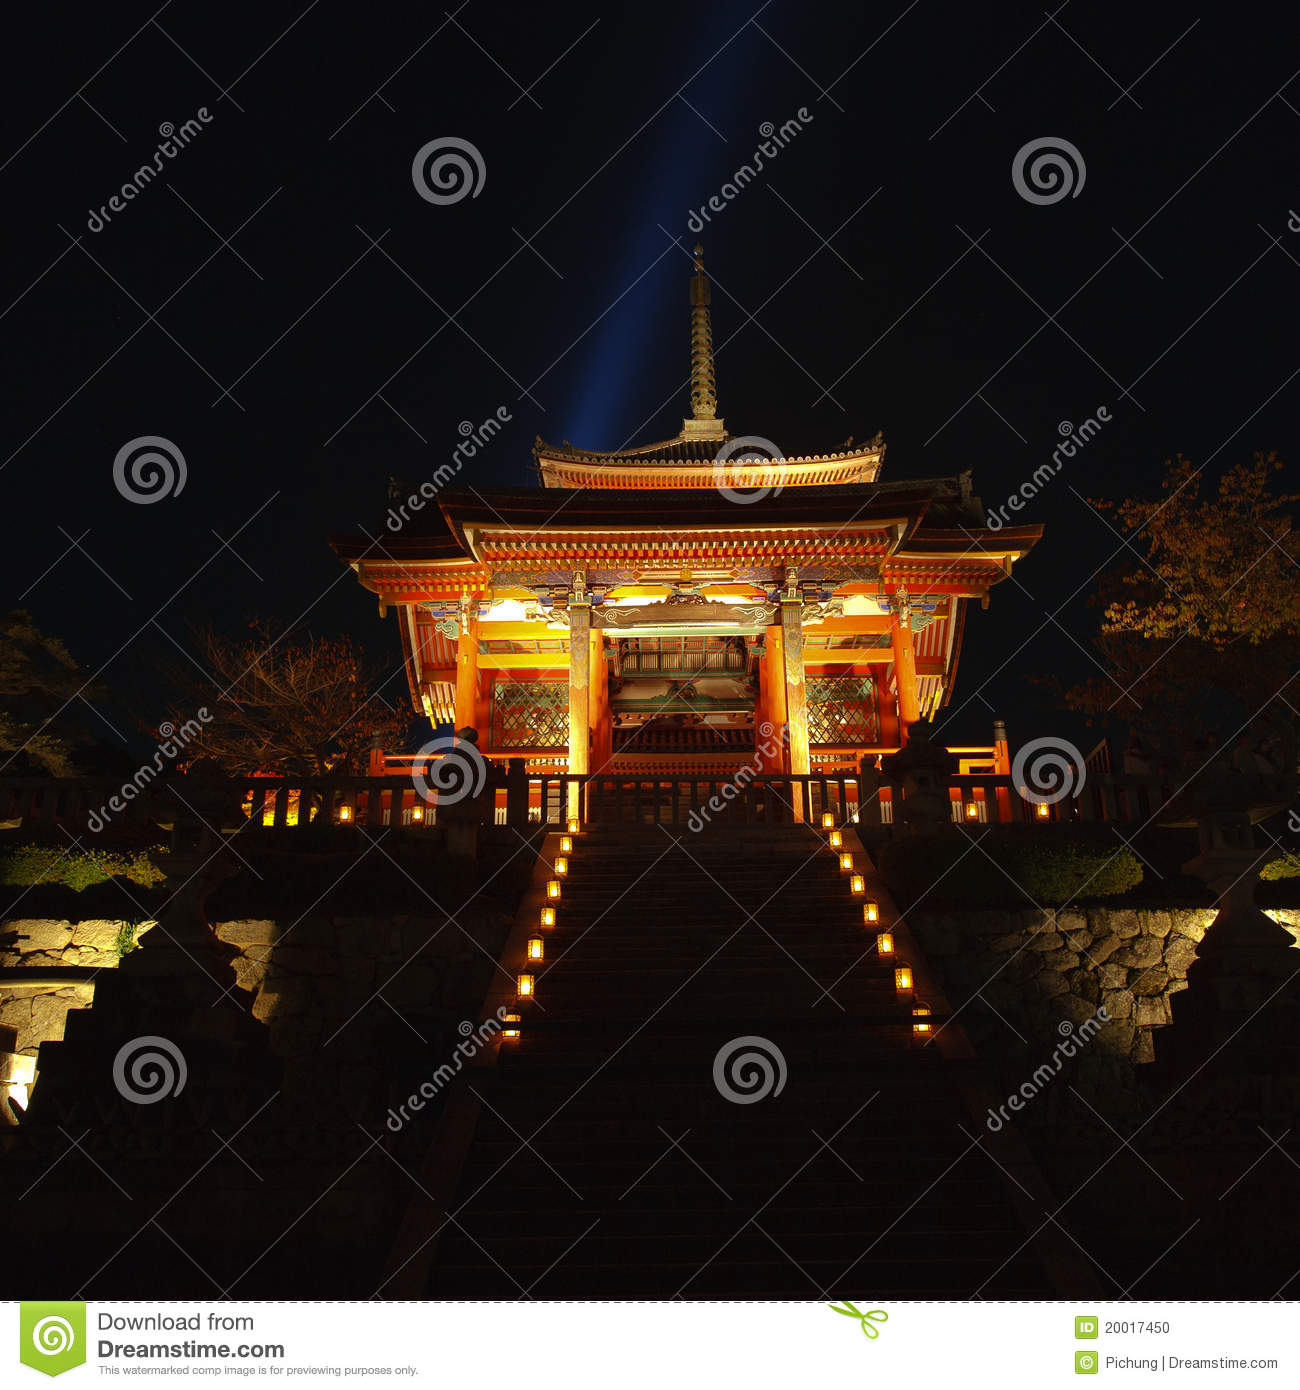 download kyoto golden autumn 7 stock photo image of shrine fall 20017450